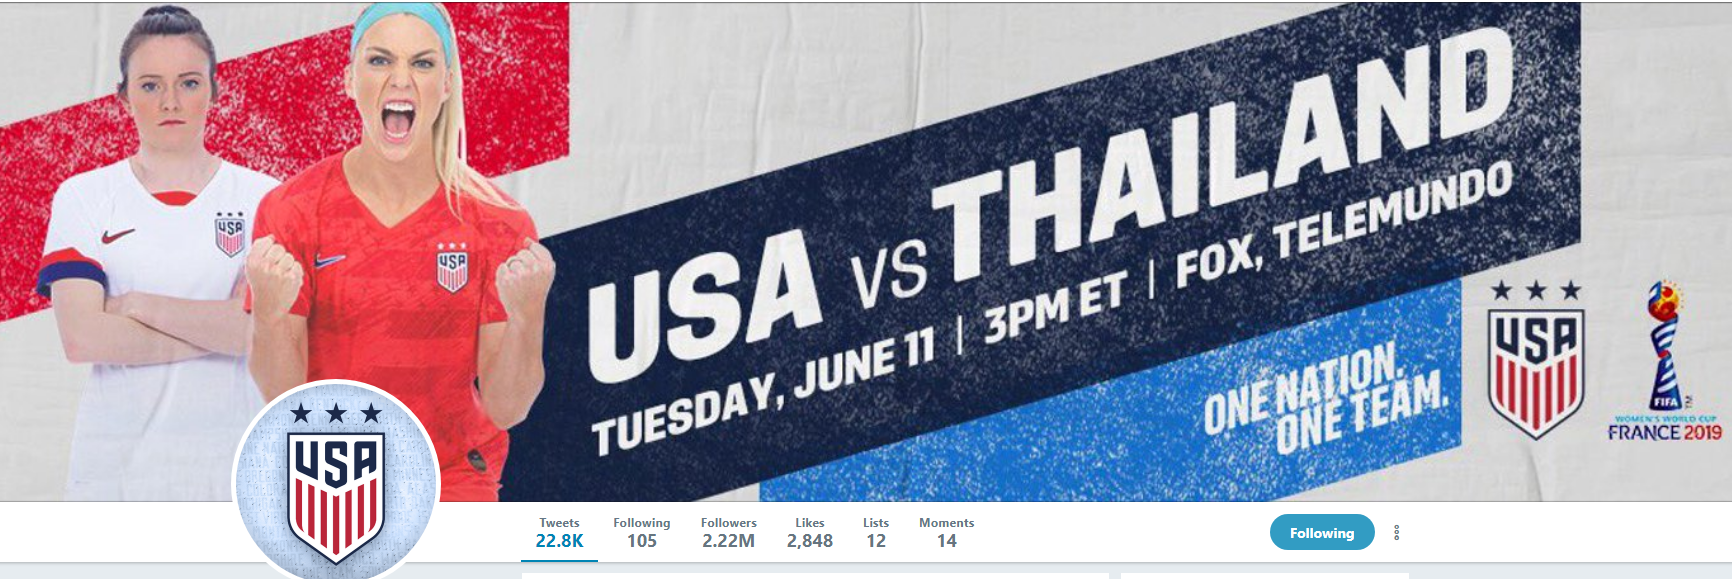 What the #OneNationOneTeam US Women's FIFA World Cup Campaign Can Teach Us About Solidarity, Parity and Marketing